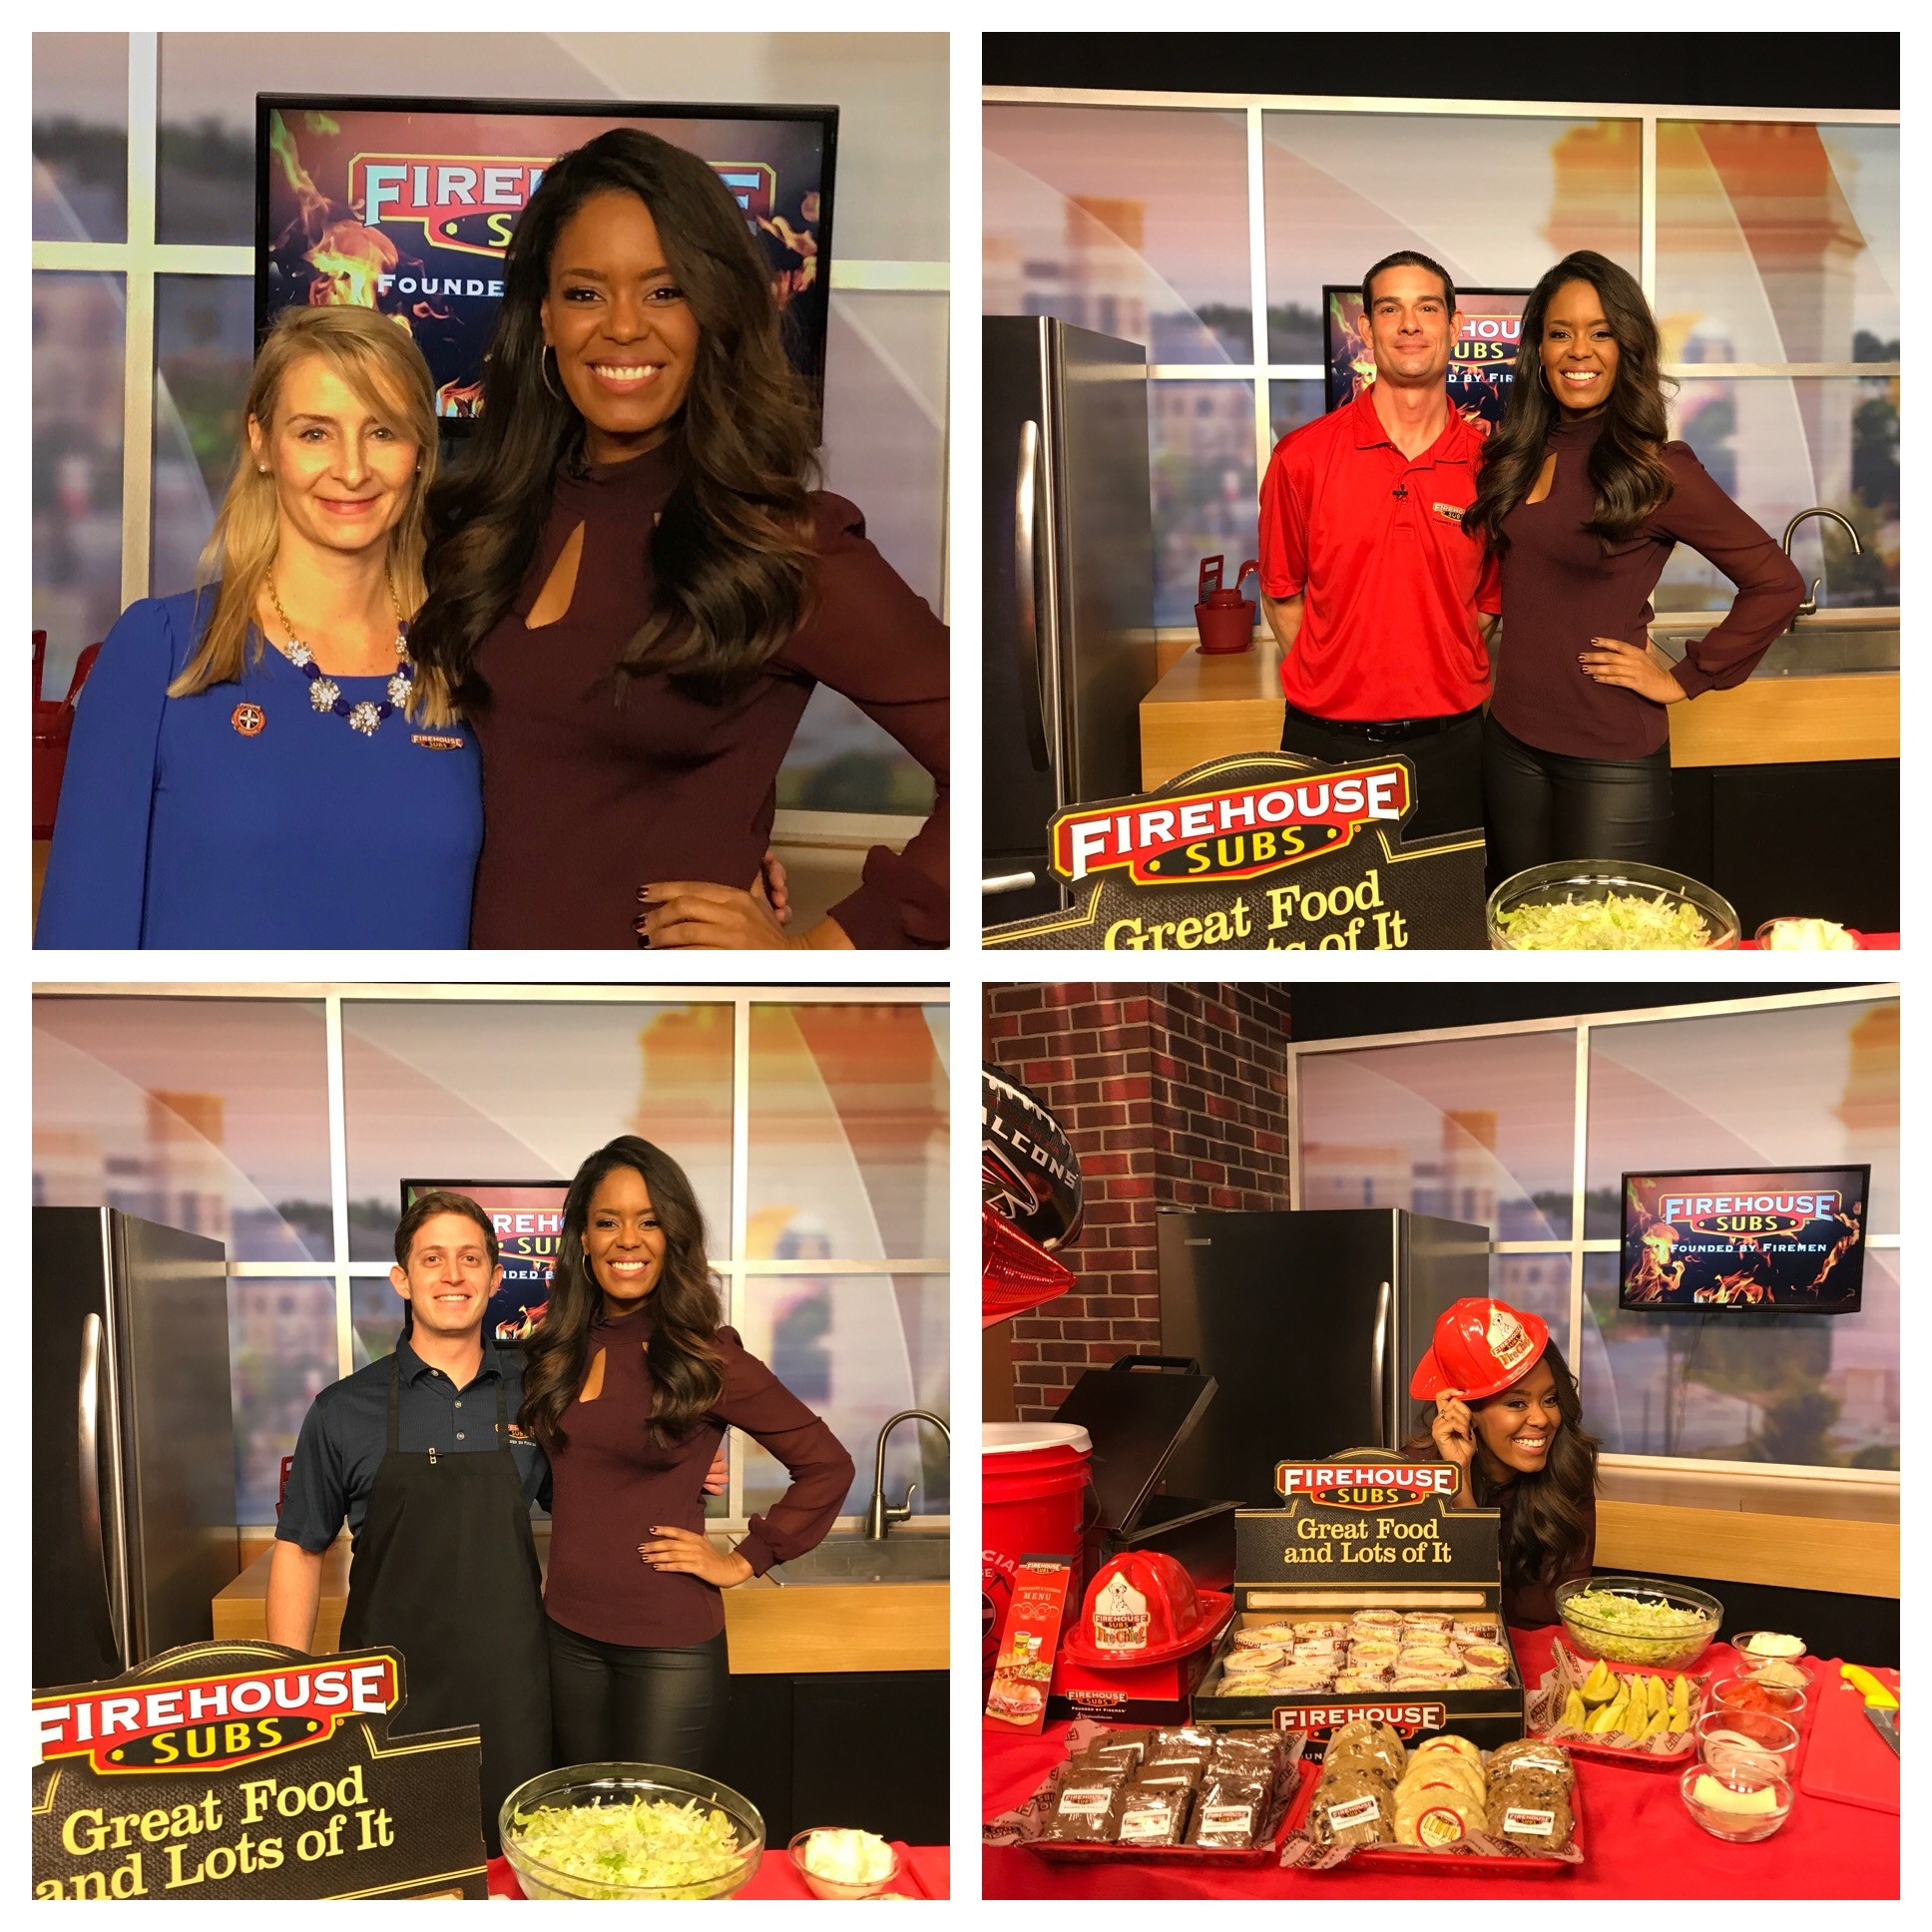 FIREHOUSE SUBS FEATURED ON ATLANTA PLUGGED IN